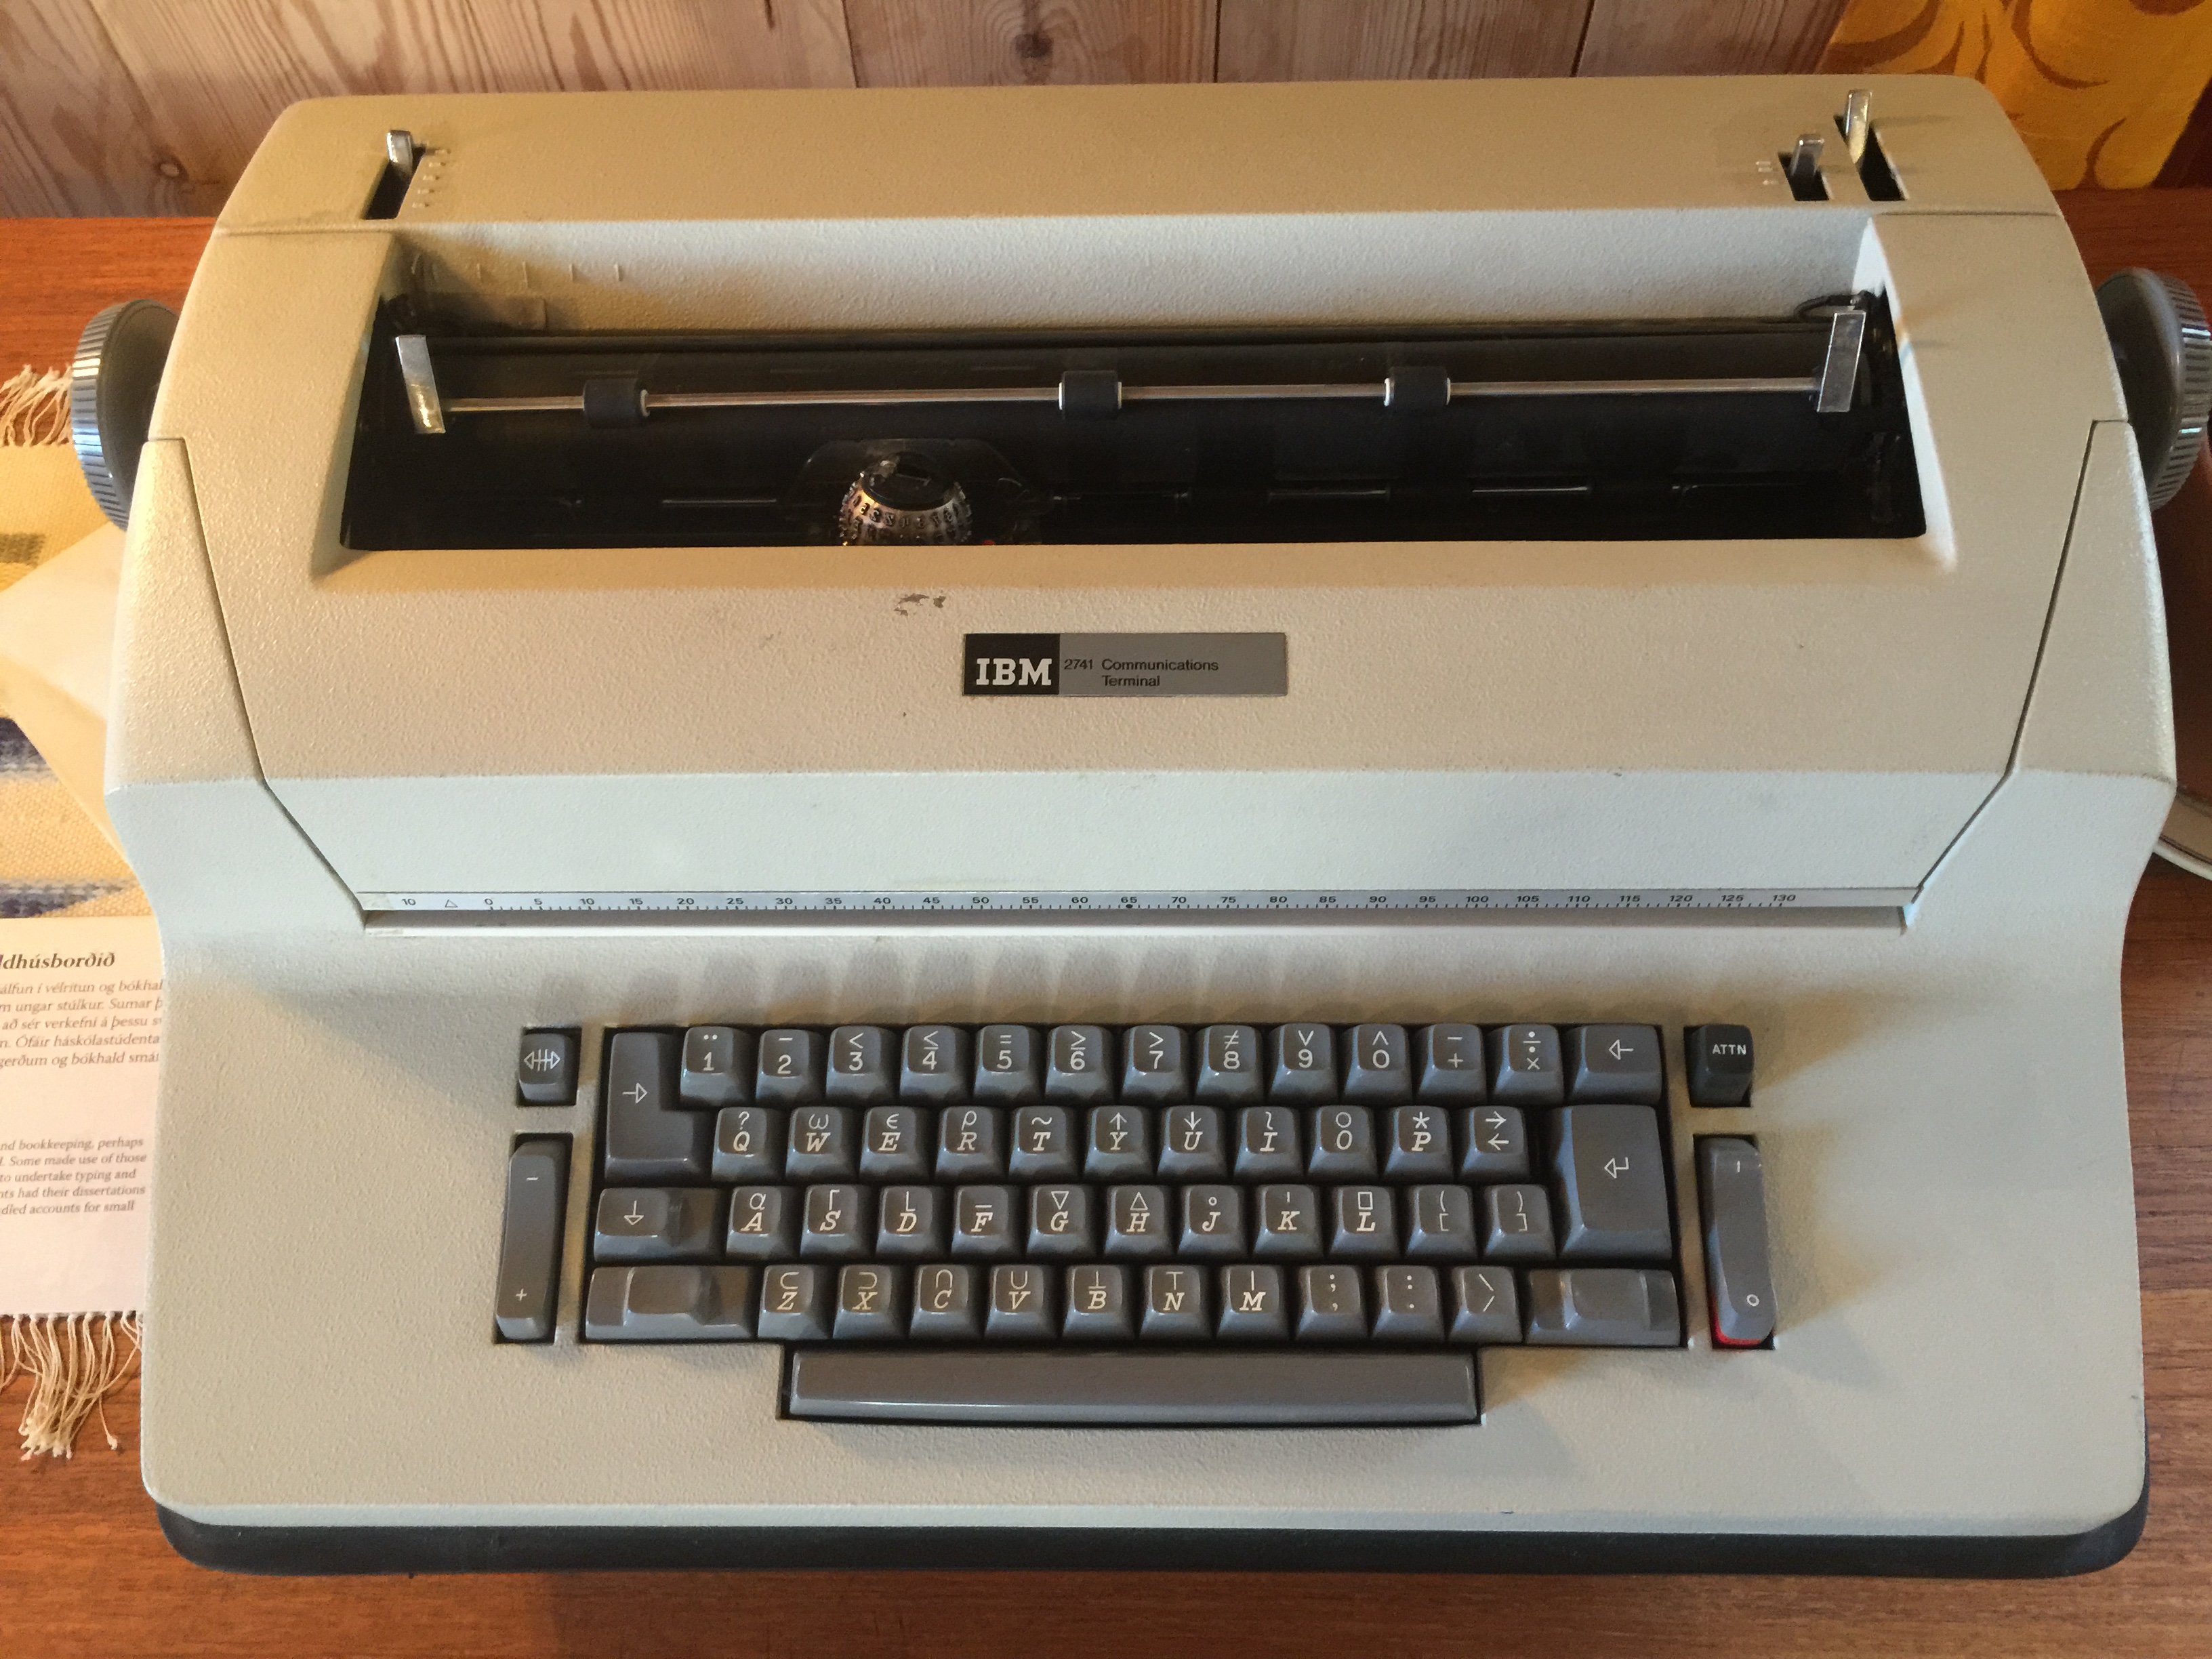 Control Key and Capslock Key Positions in Old Keyboards